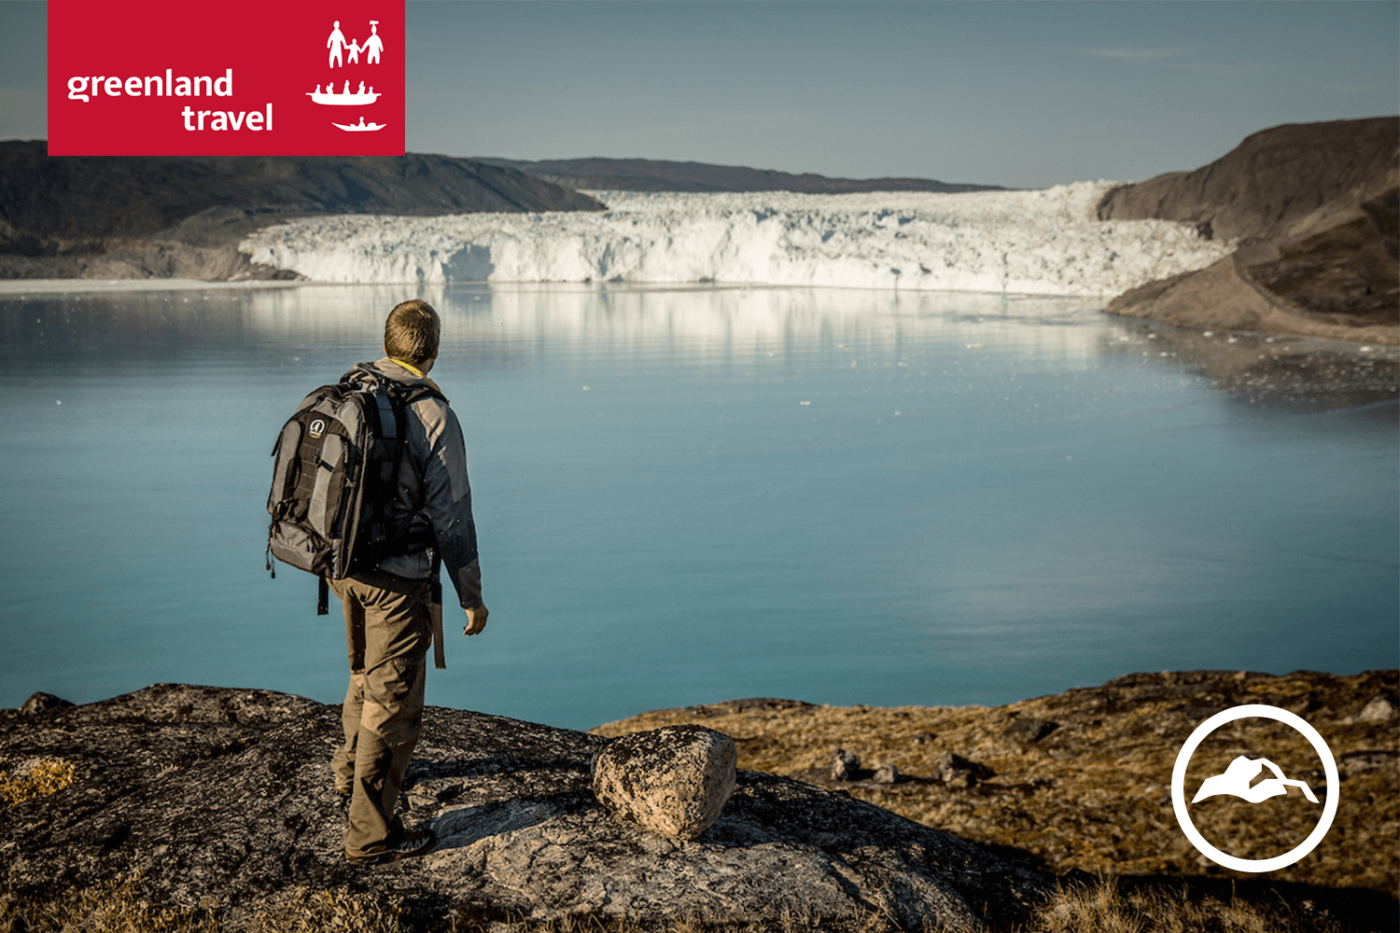 Greenland Travel: Dream trip to an Arctic Paradise